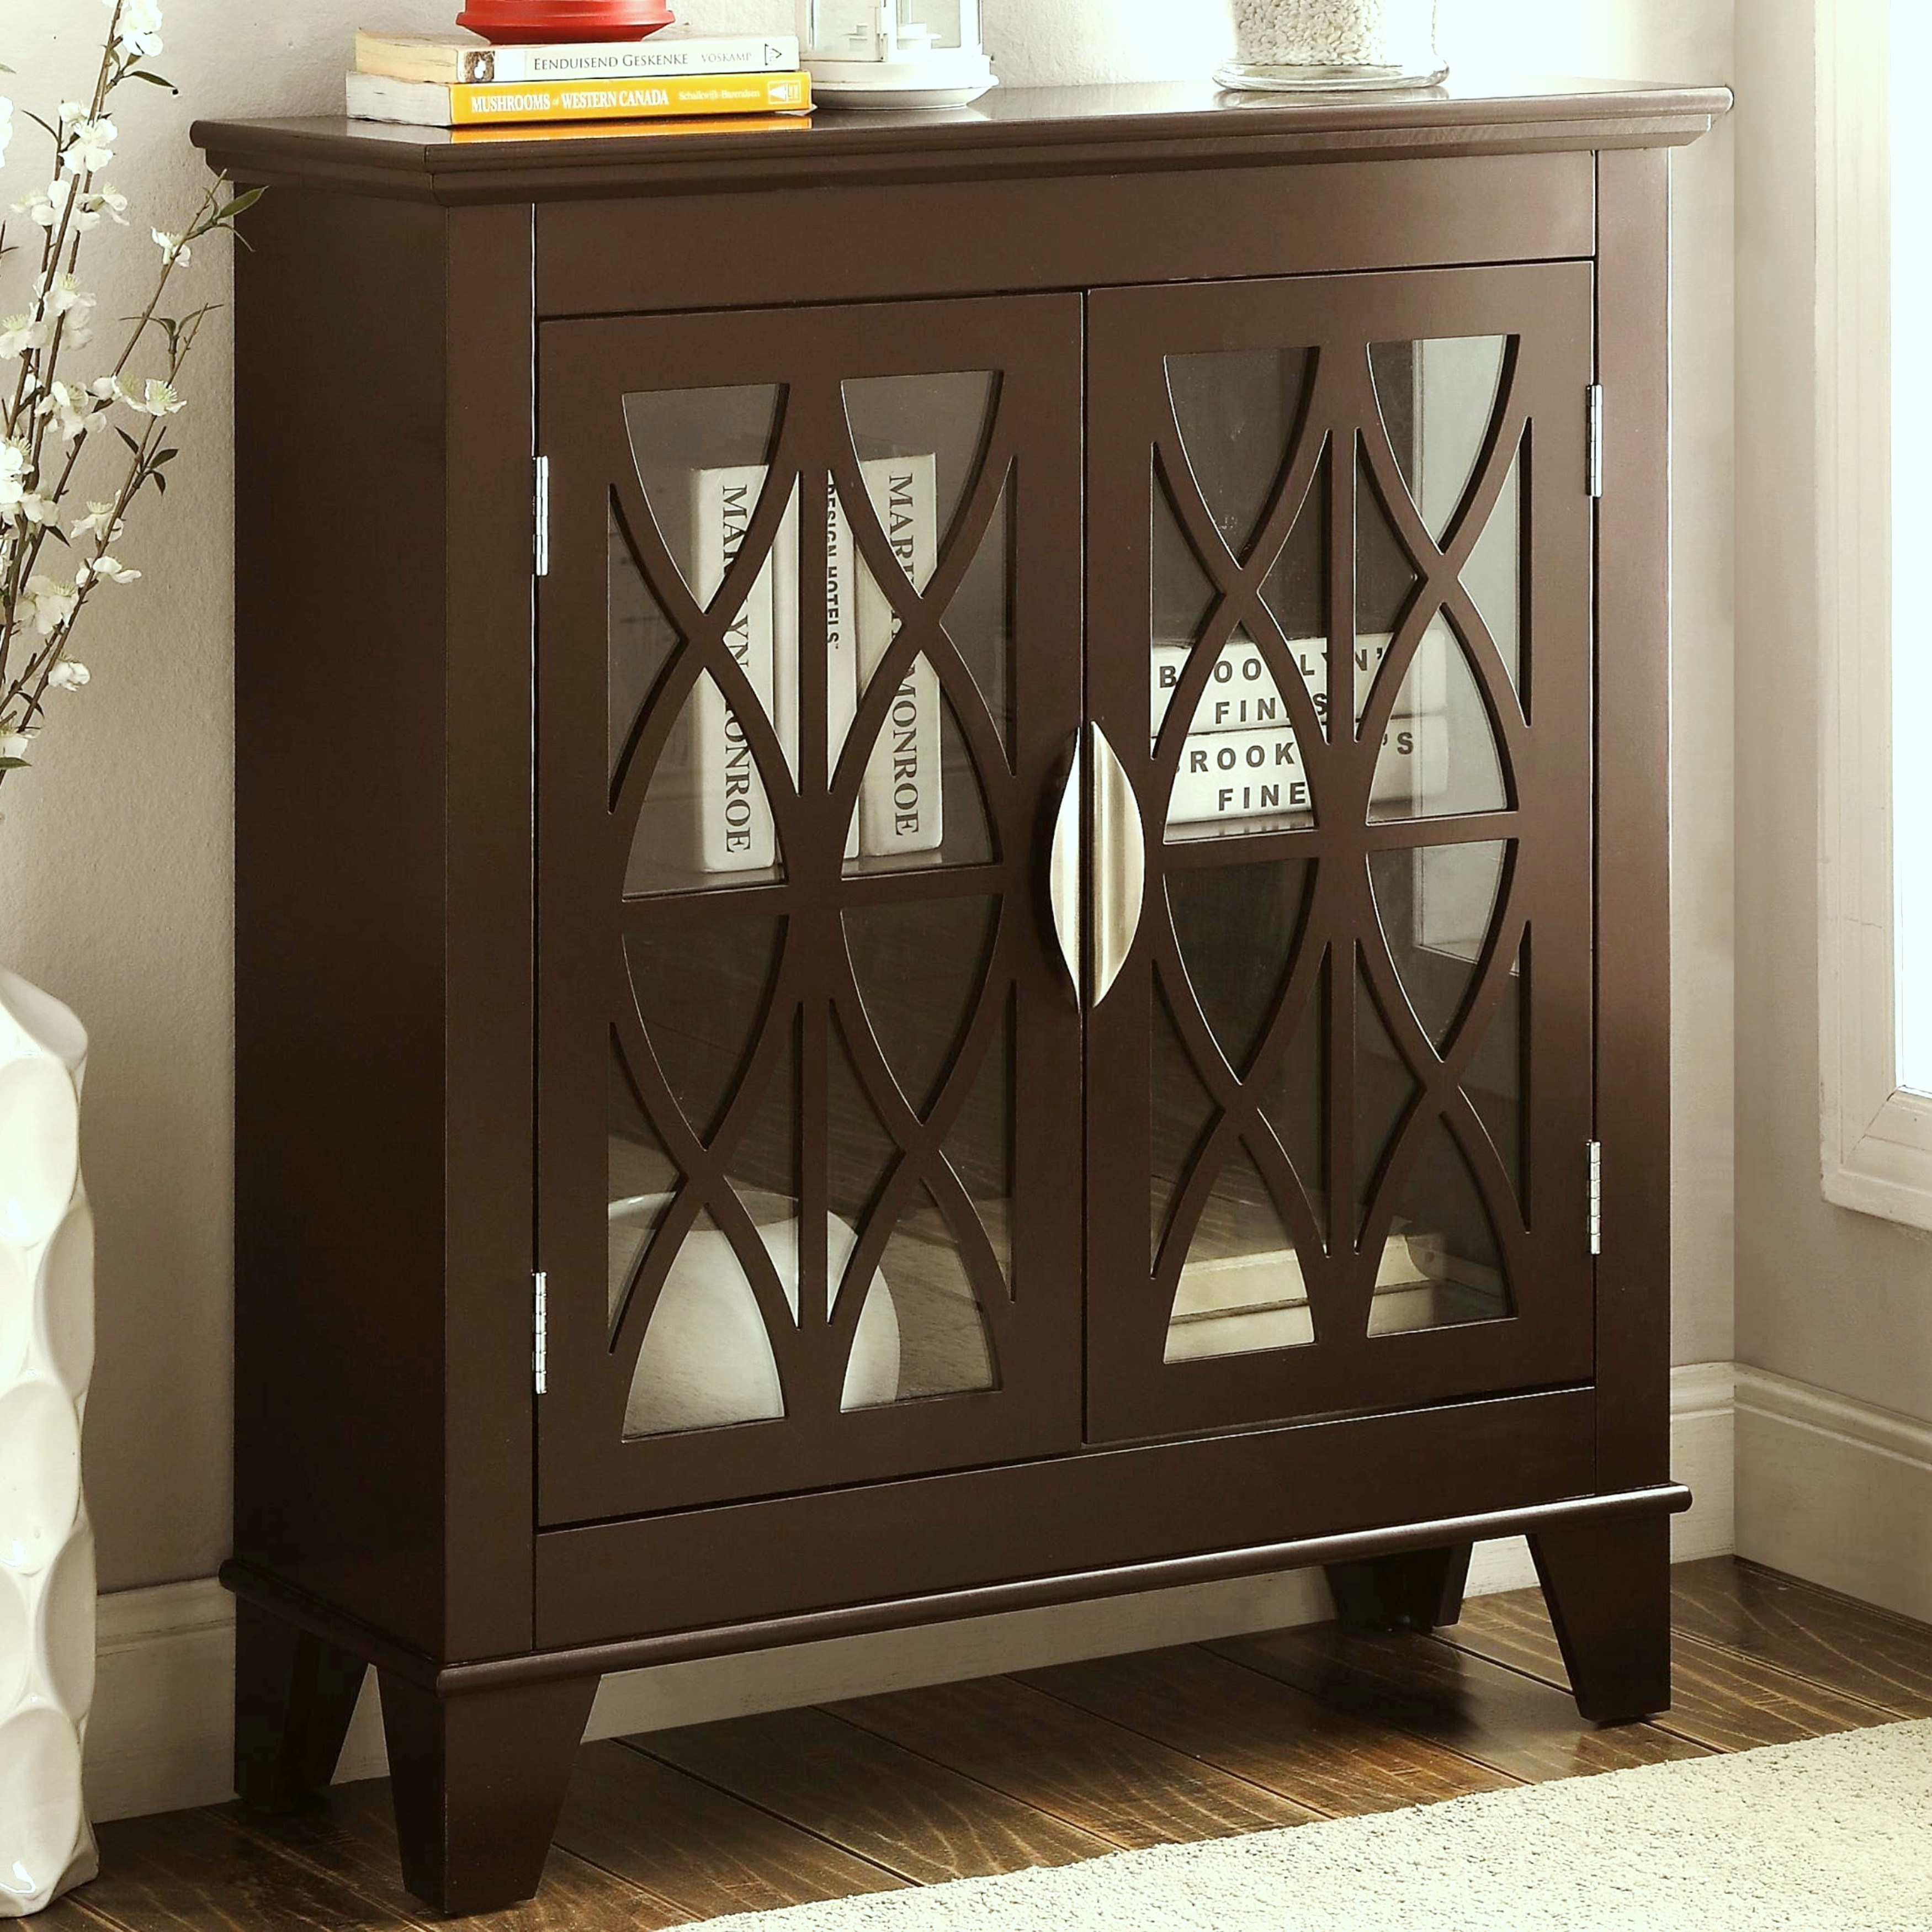 transitional design accent cabinet with decorative glass doors table free shipping today counter height chairs outdoor umbrella cantilever target chair home goods dressers